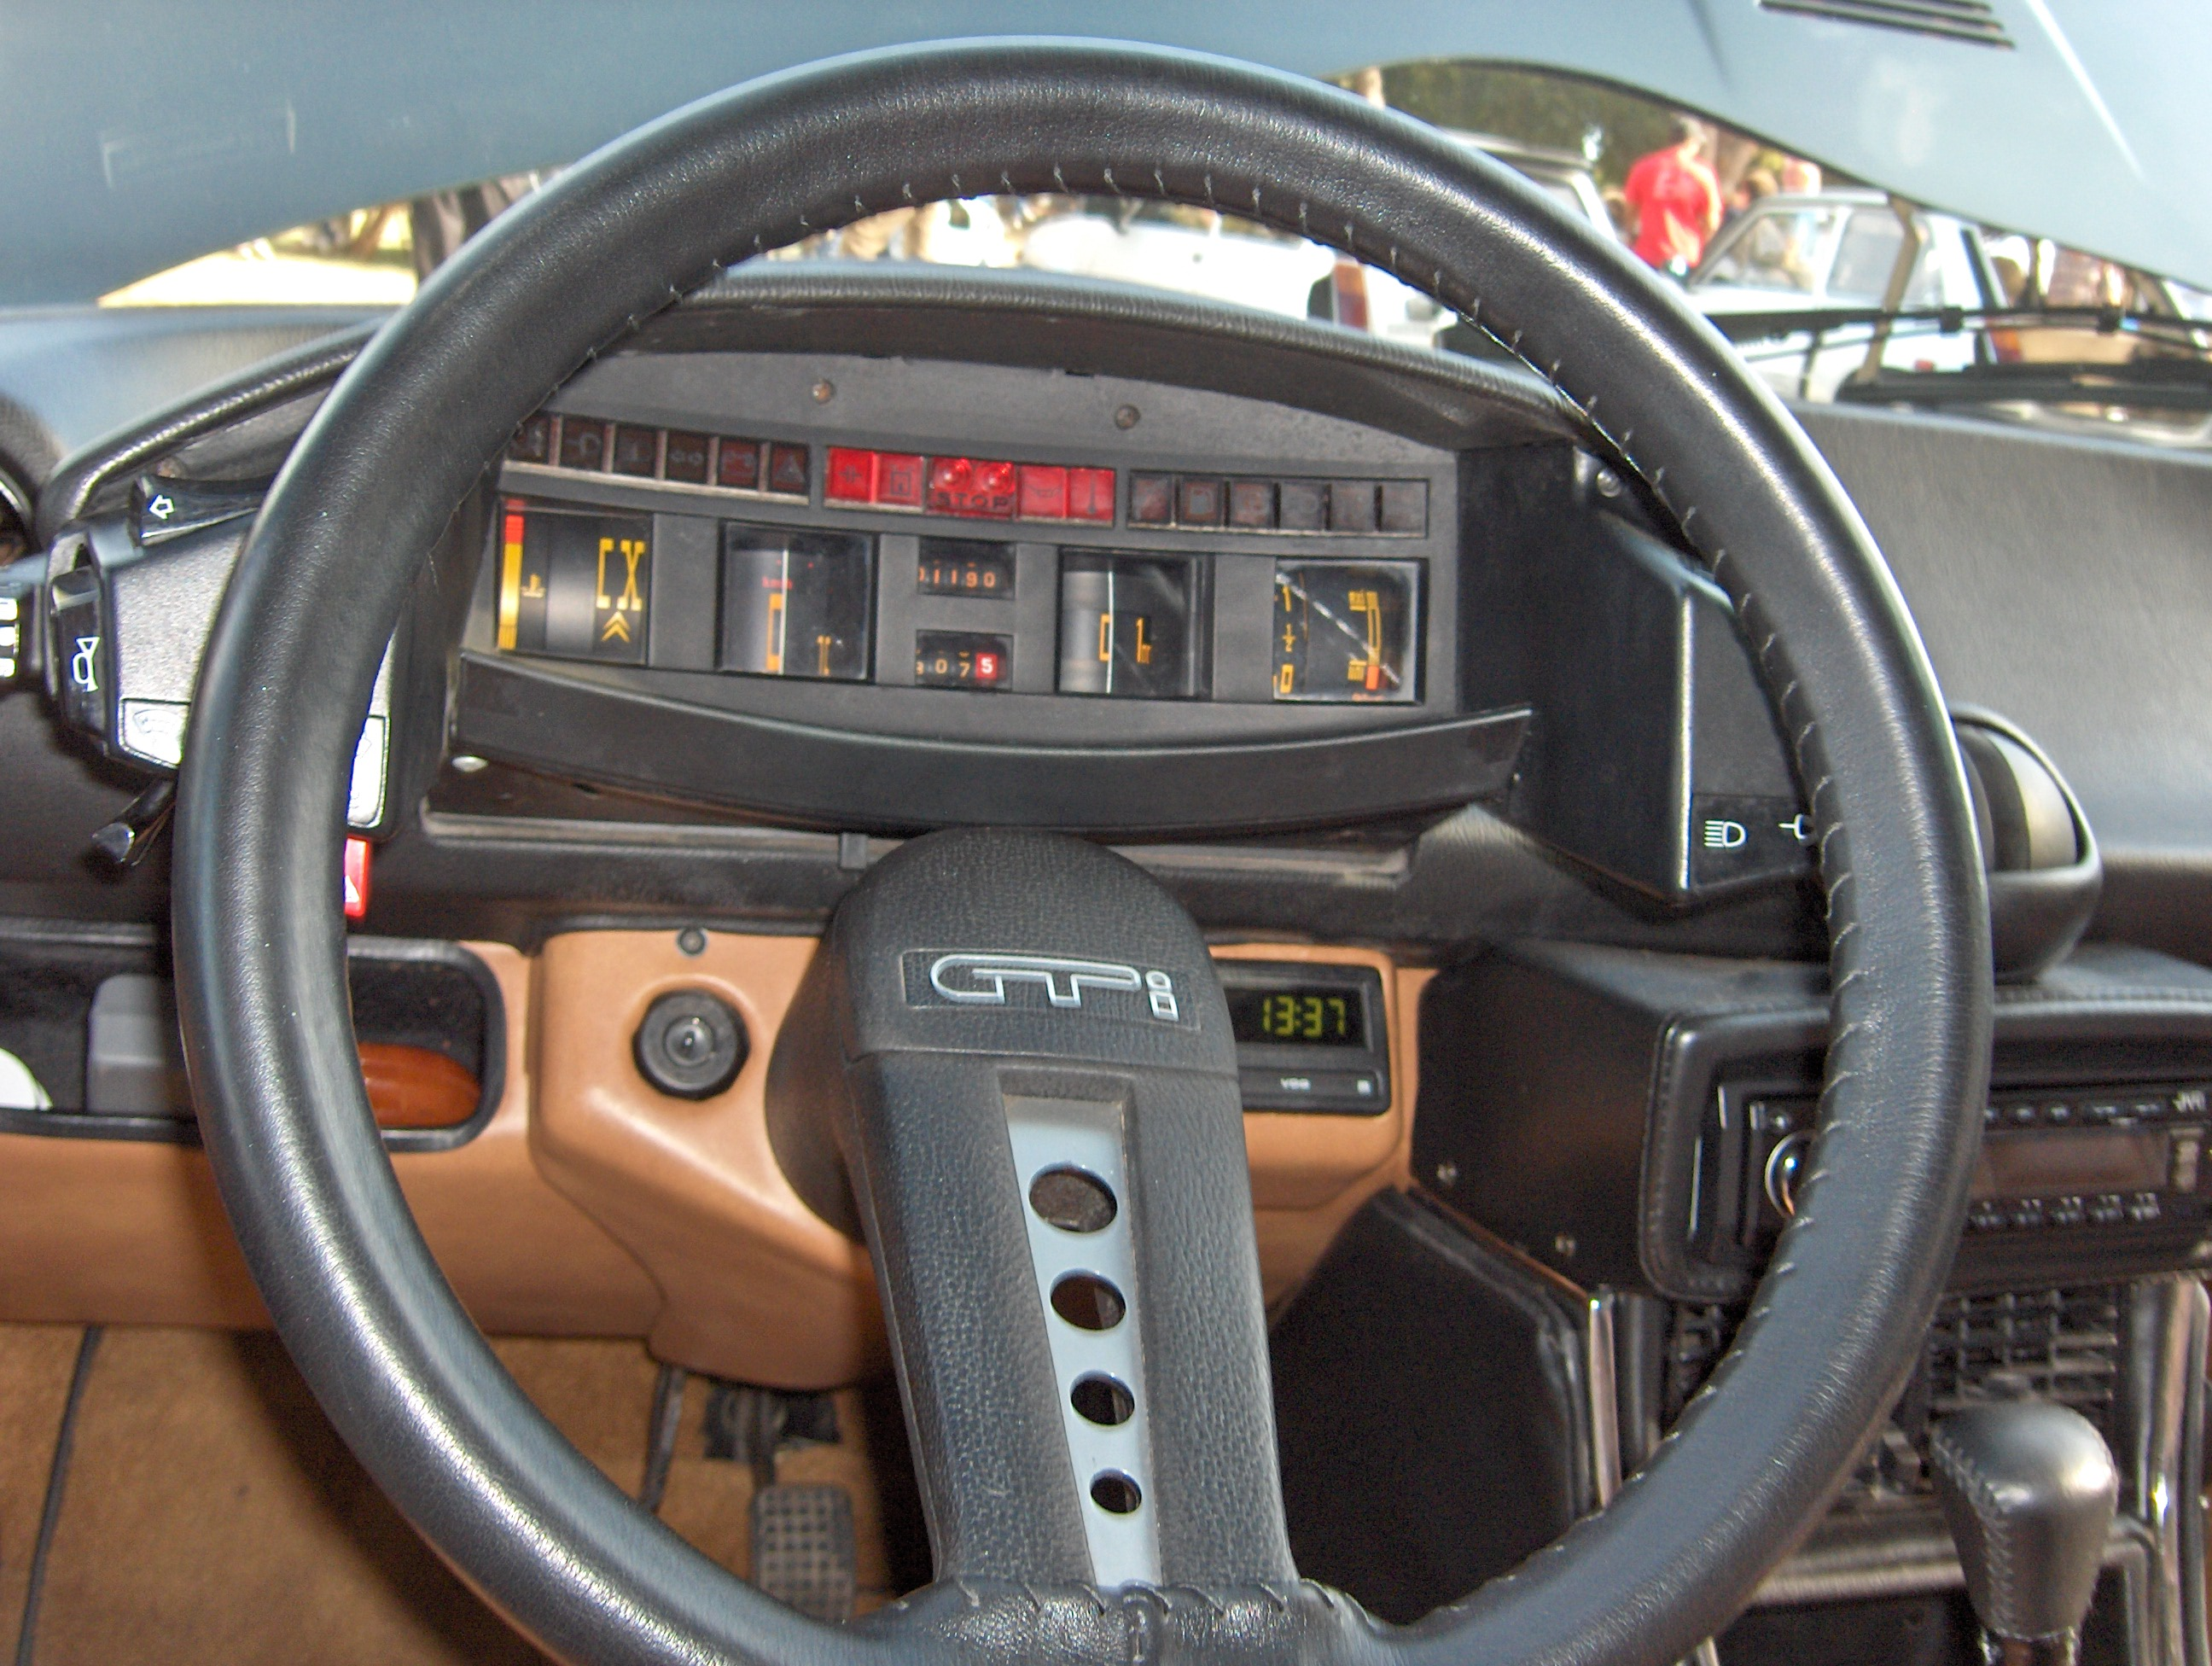 Citroen_CX_dashboard.JPG